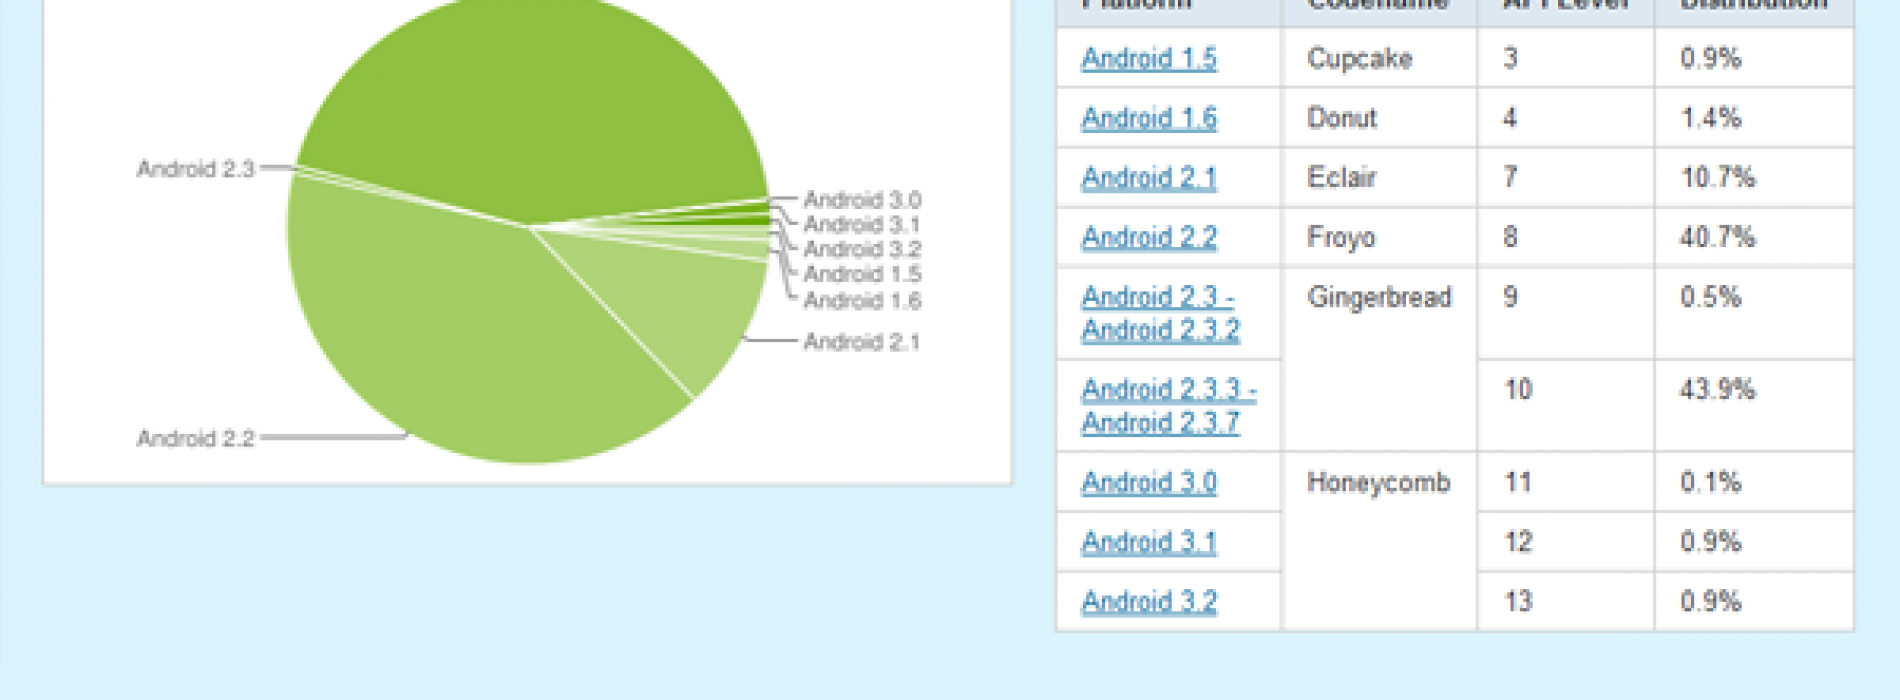 Gingerbread leads all builds of Android at 44.4 percent